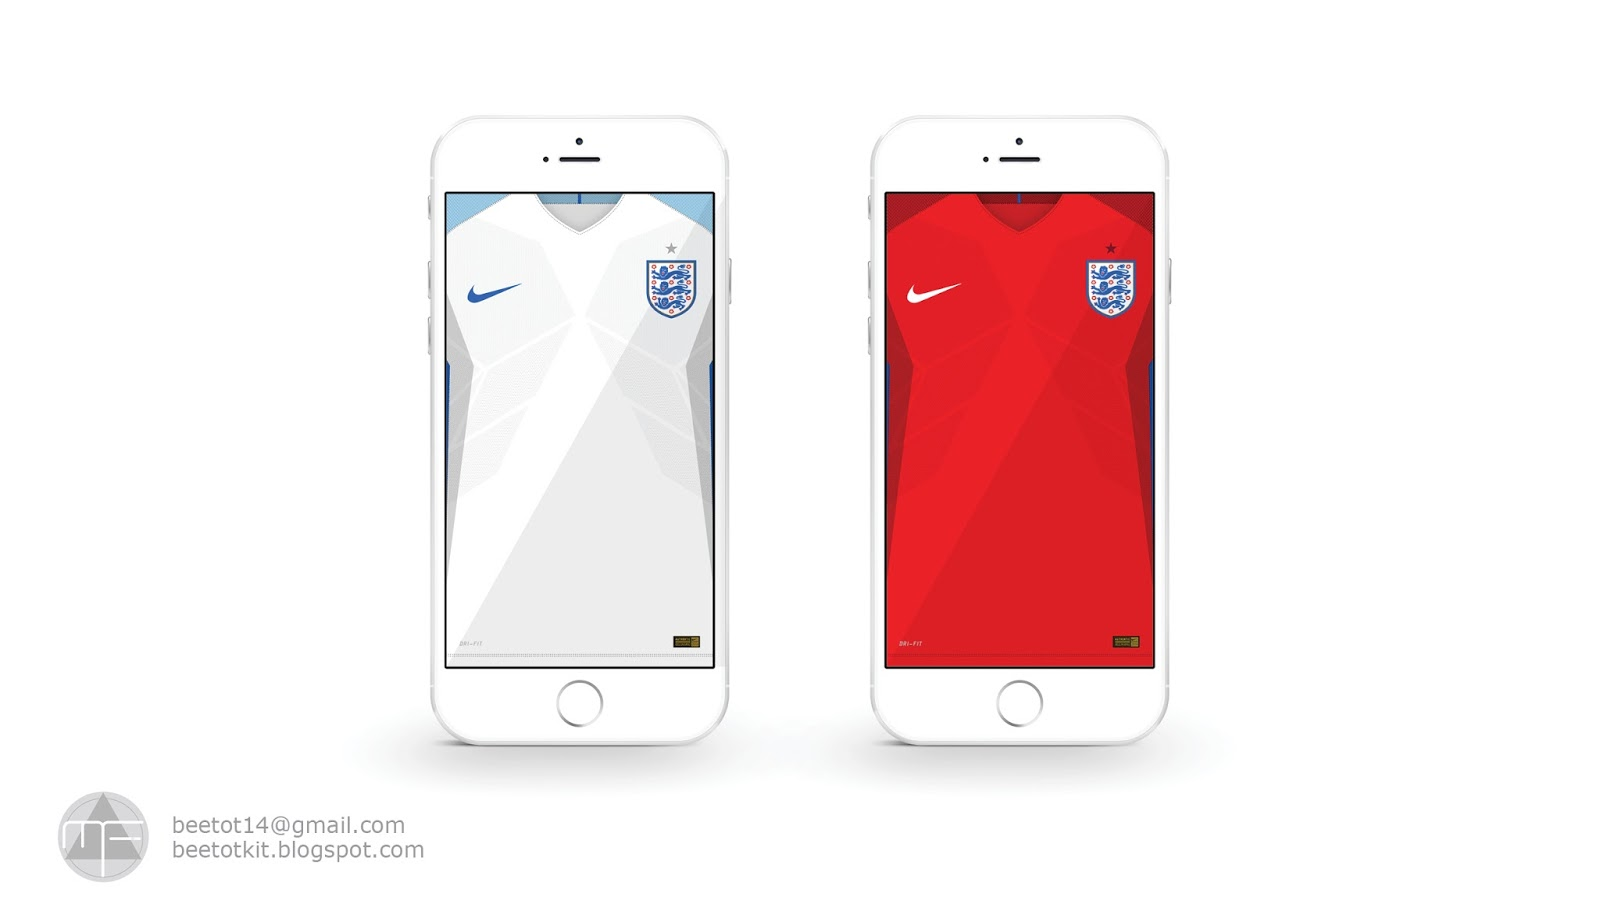 Beetot Kit England Kit Euro 2016 Iphone 6 Wallpaper